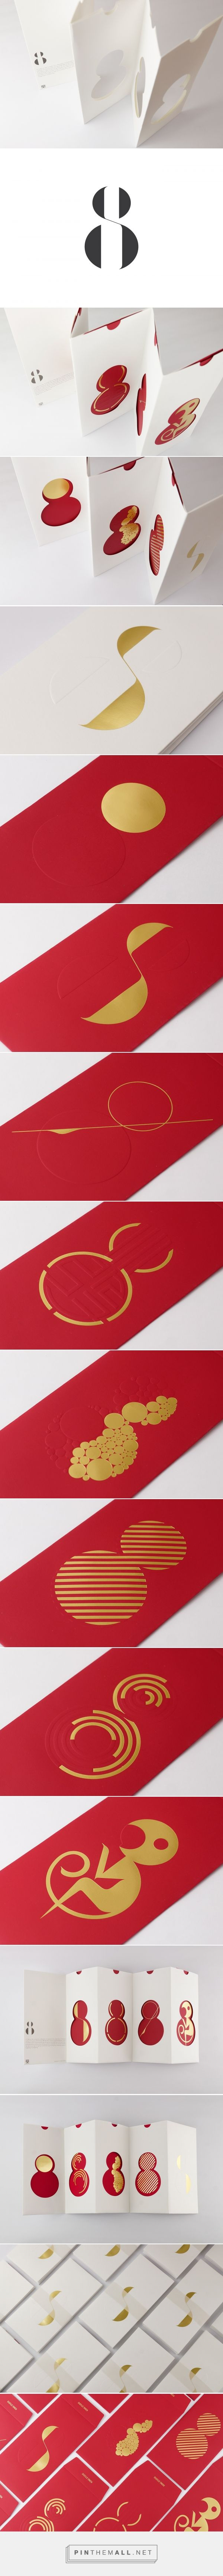 MINIMALIST RED PACKETS on Behance - created via https://pinthemall.net